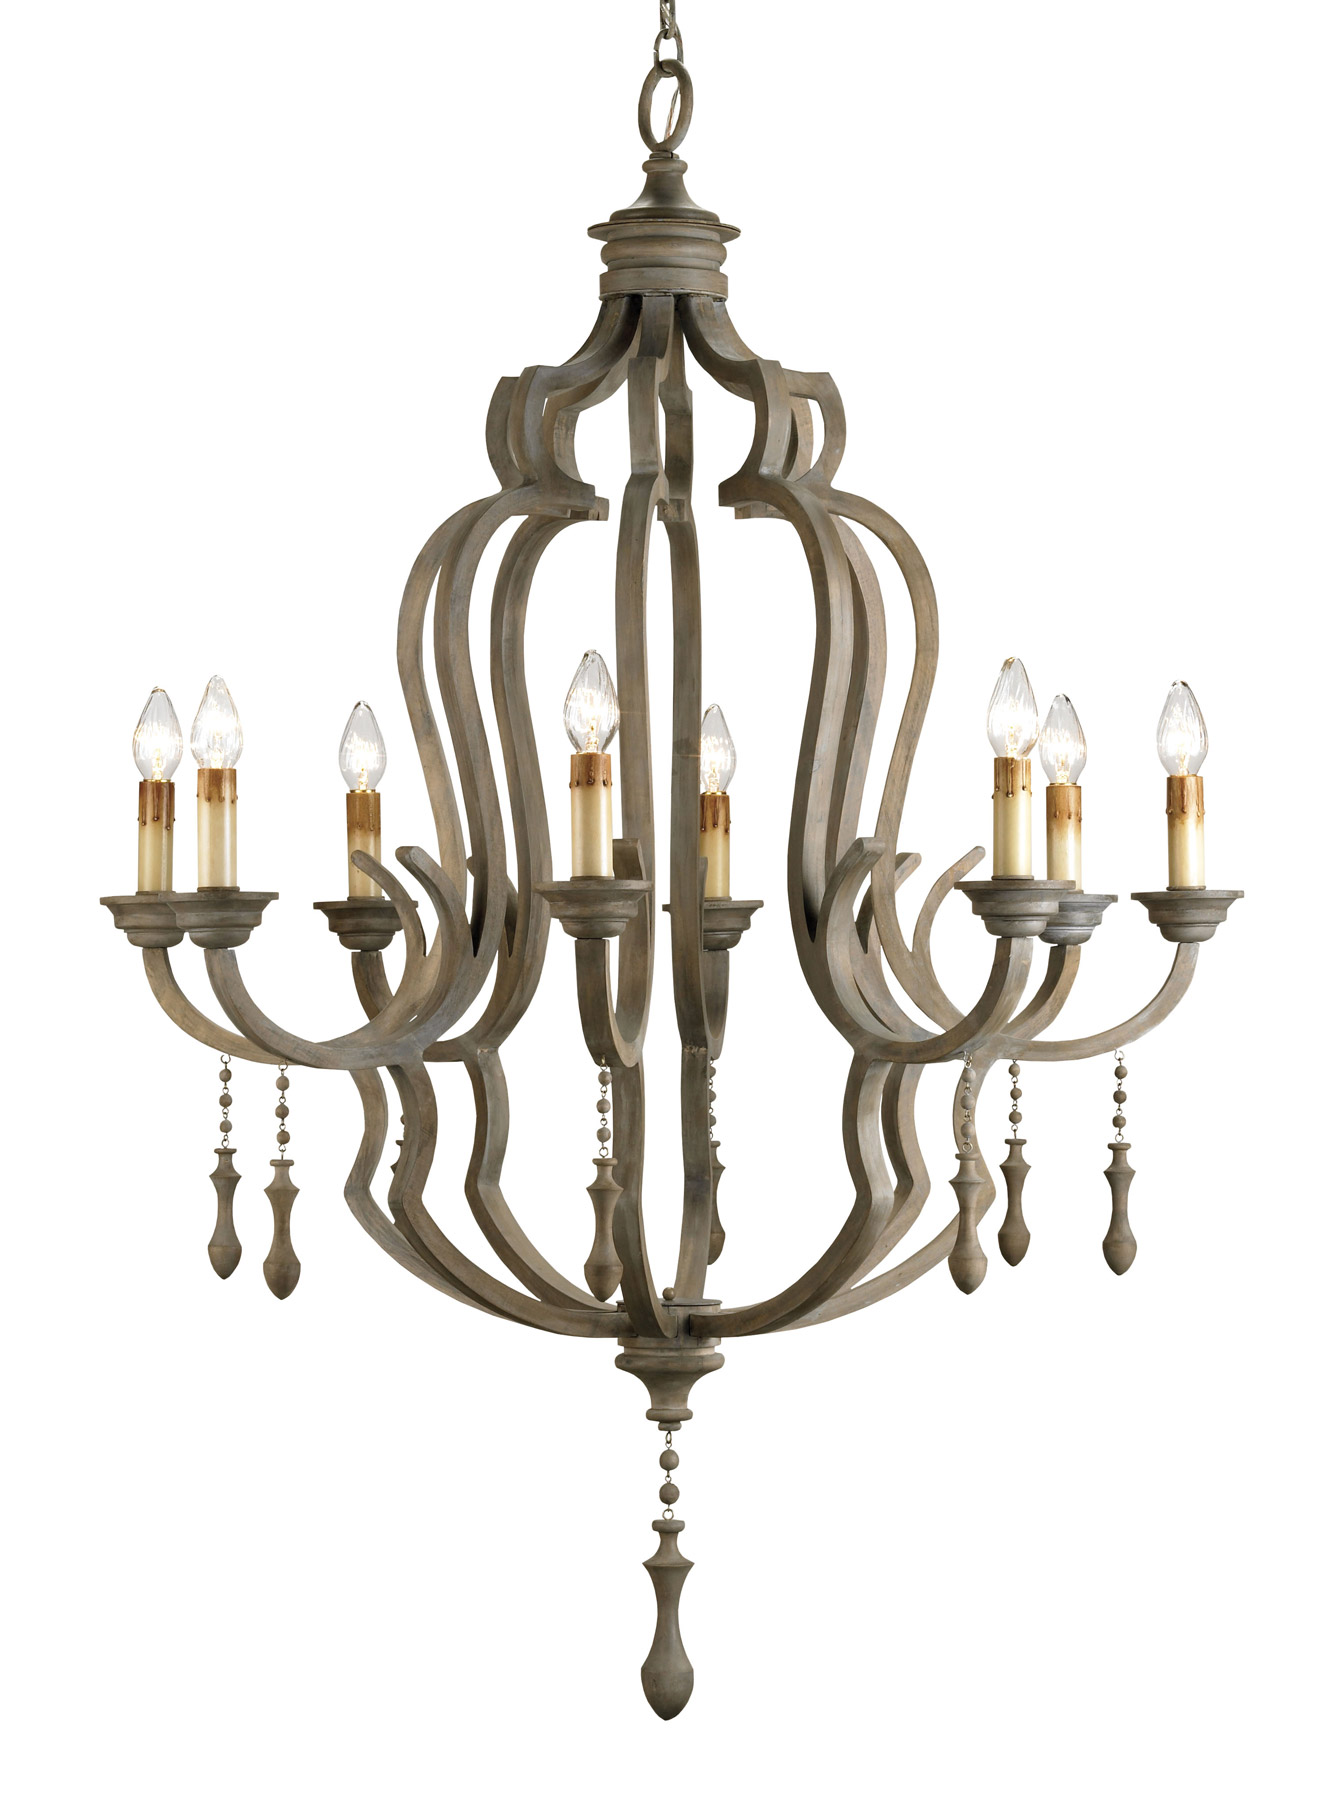 chandeliers multi tiered large chandeliers currey and company 9010. Black Bedroom Furniture Sets. Home Design Ideas